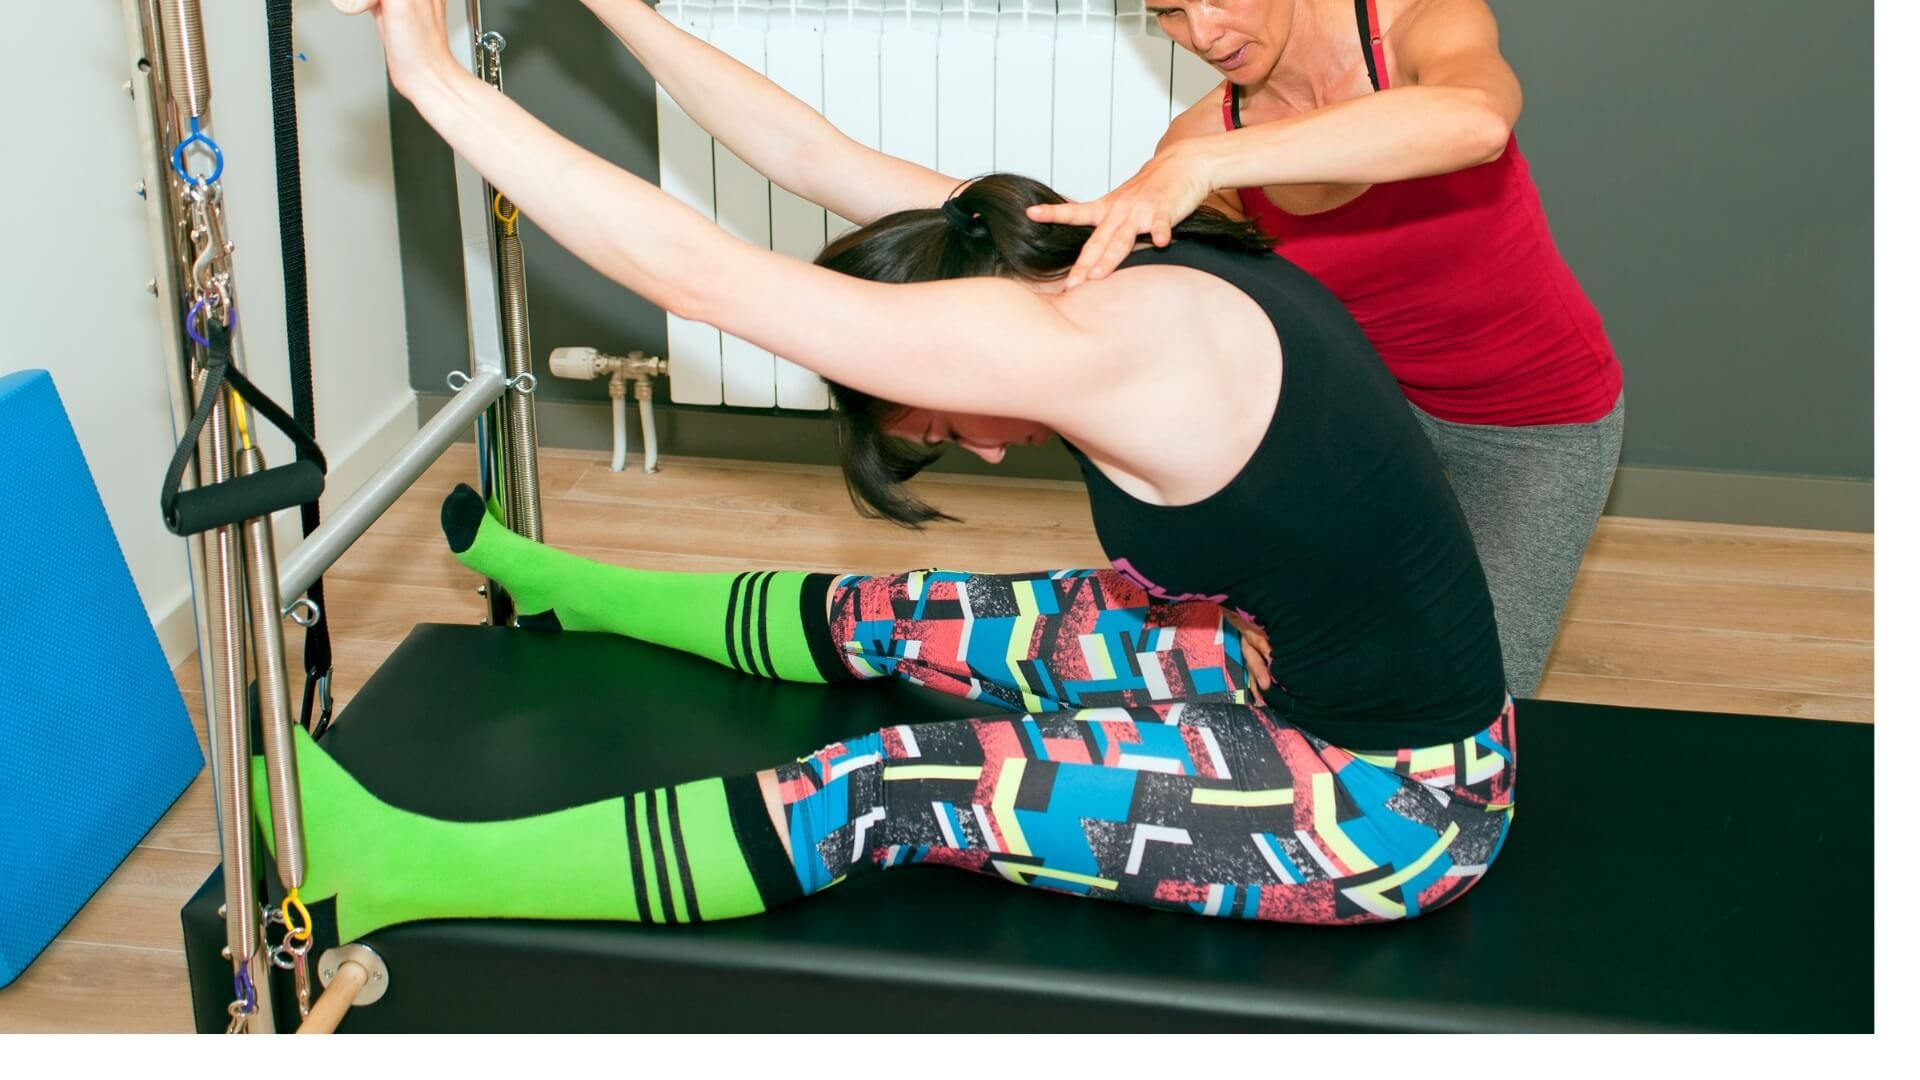 lady doing clinical pilates physio rehabilitation on  pilates trapeze table performing the assisted roll down exercise under guidance from a physio